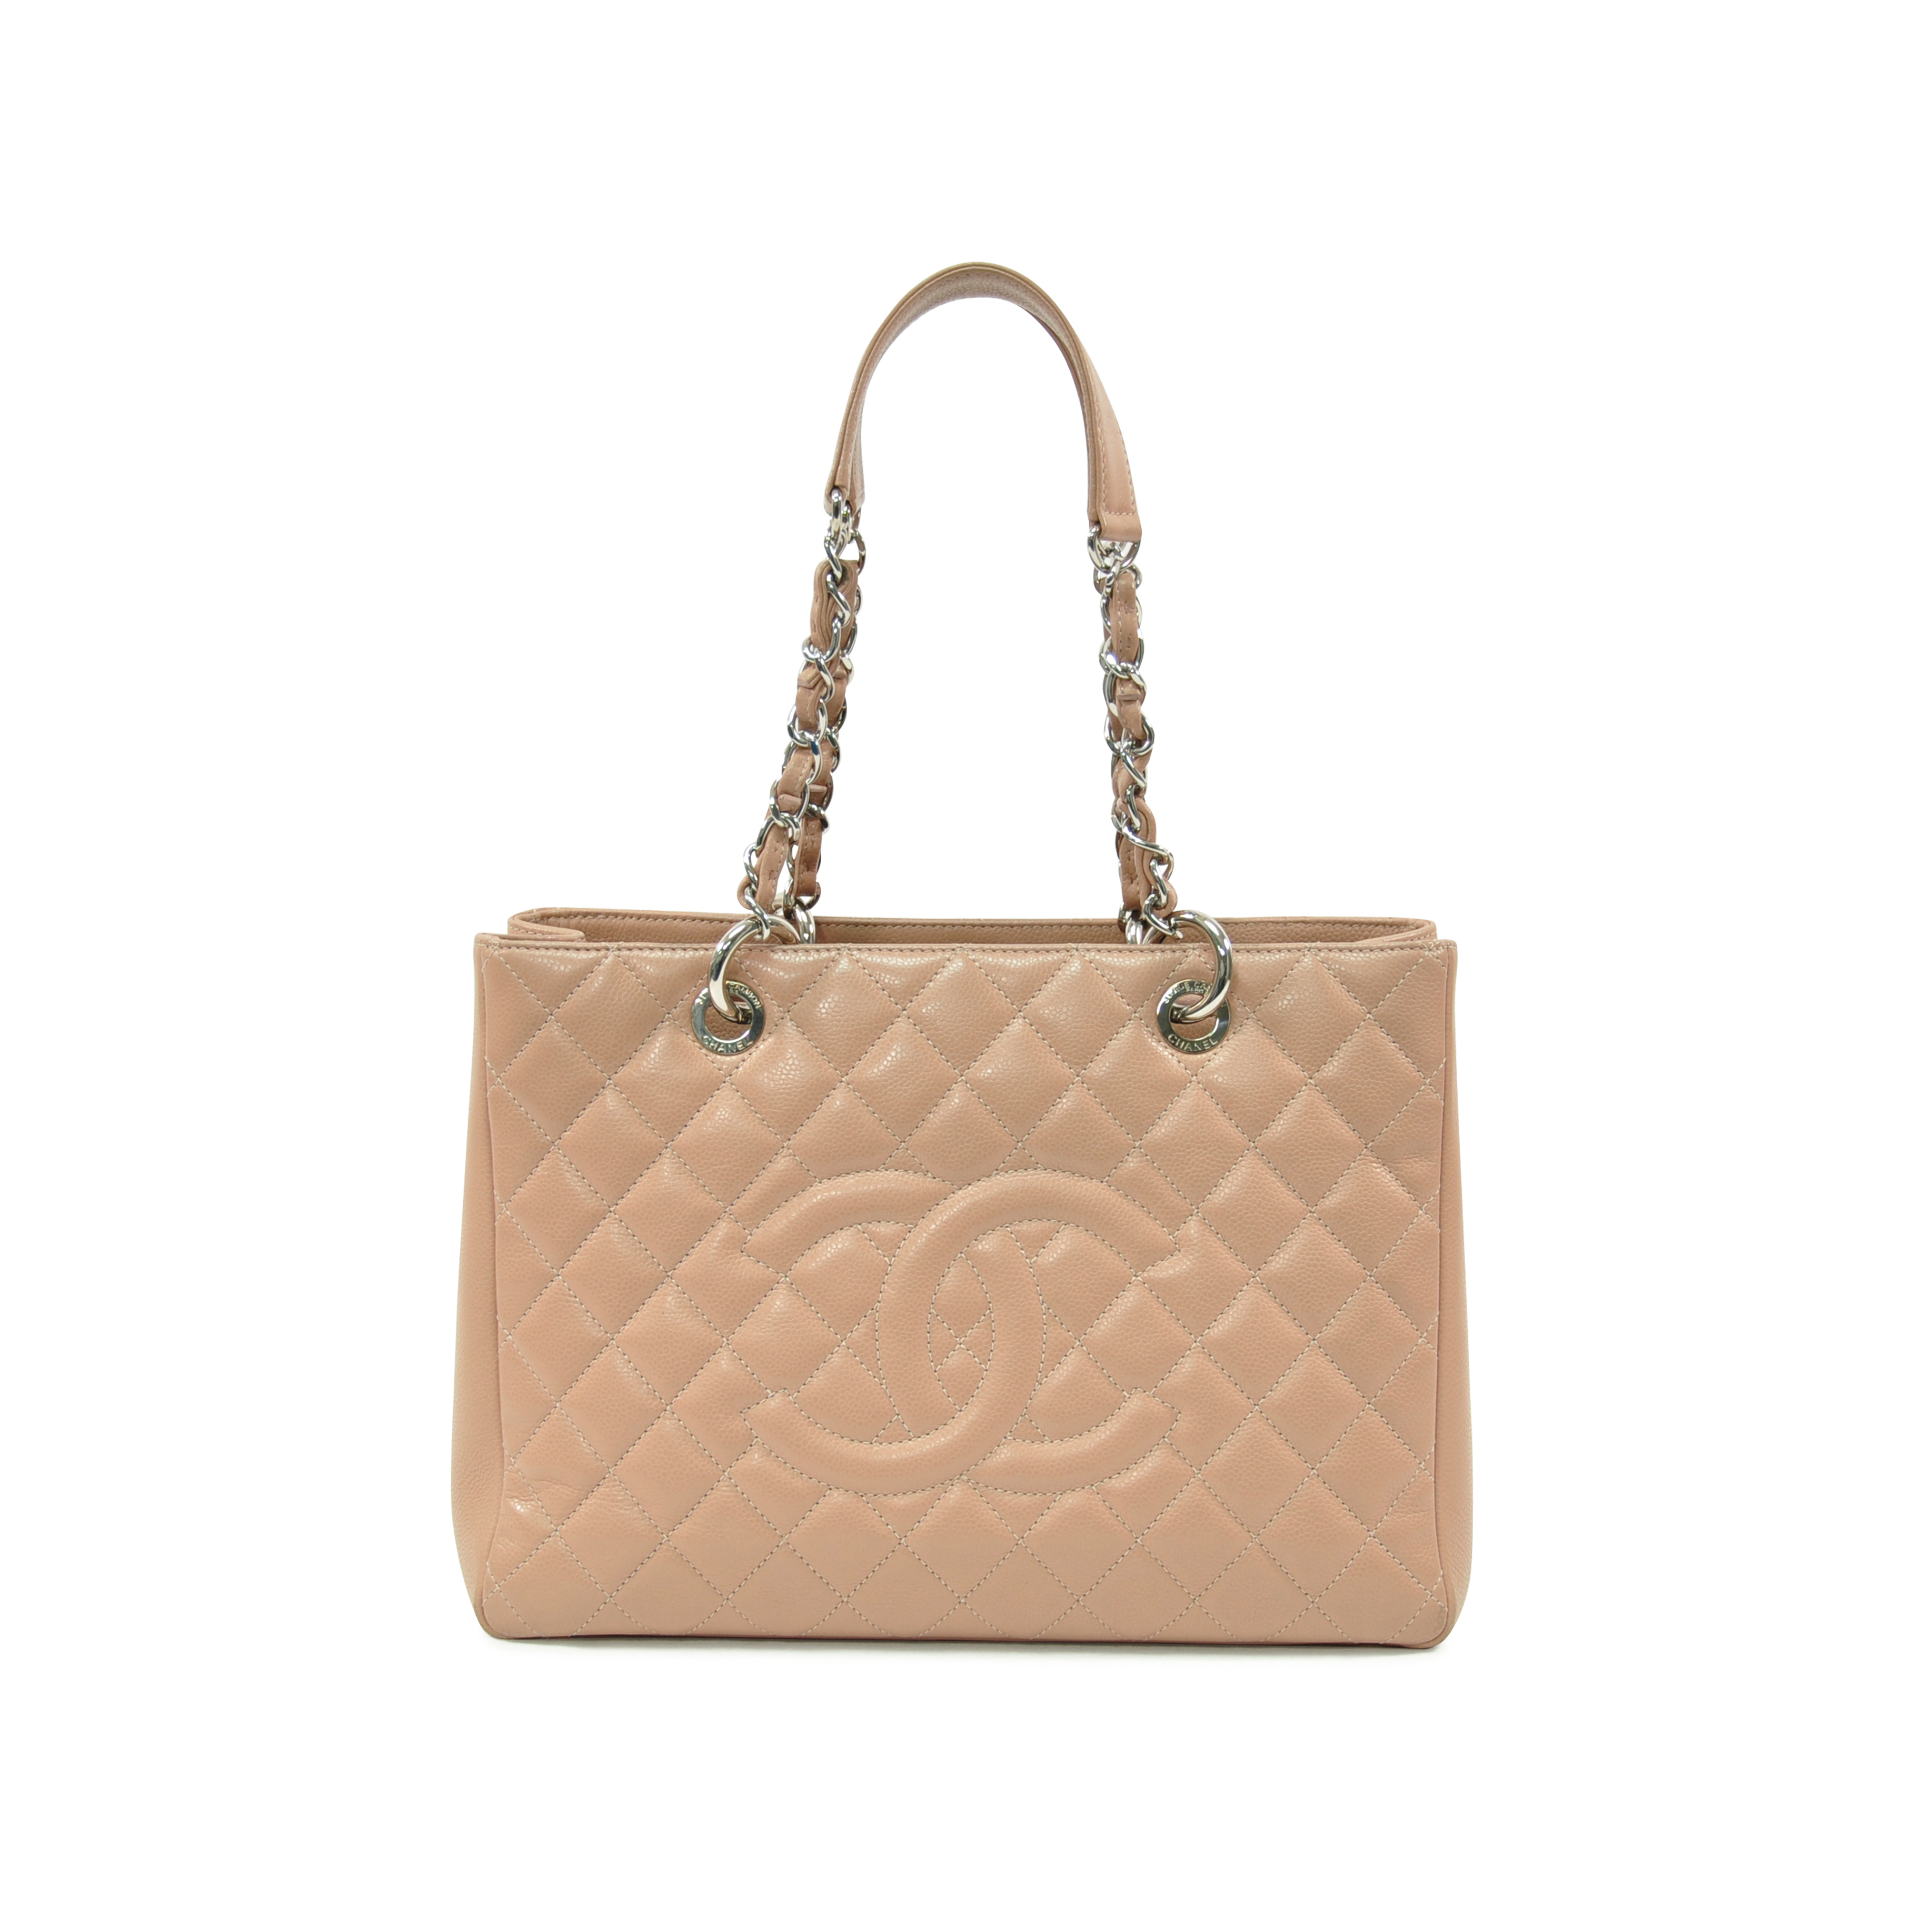 831d052ded02 Authentic Second Hand Chanel Grand Shopping Tote (PSS-328-00002 ...